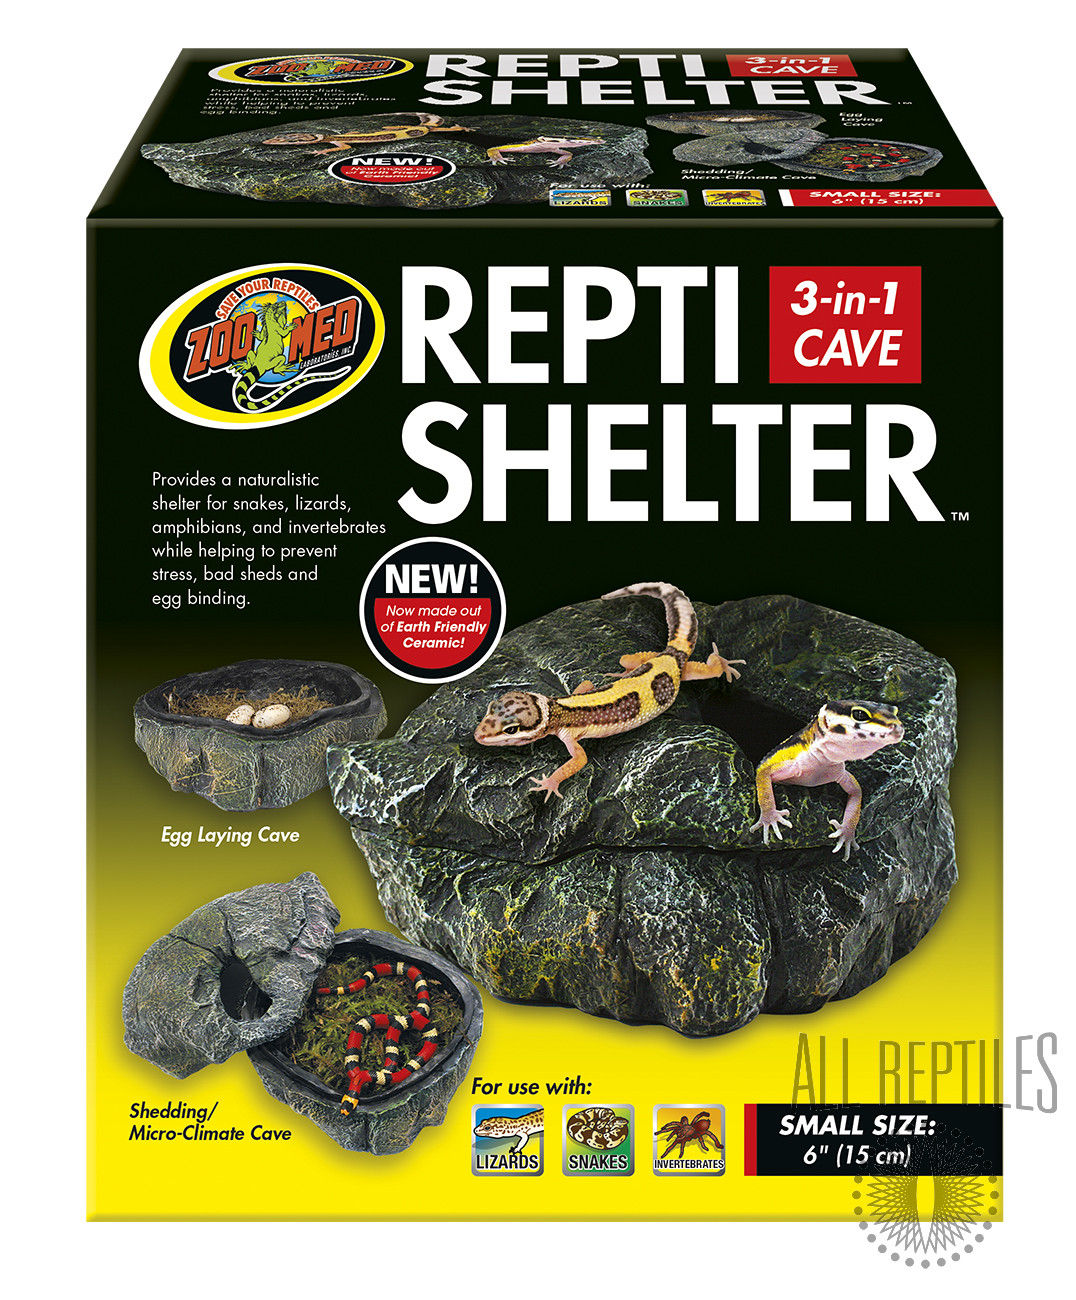 ZM Repti Shelter 3-In-1 Cave